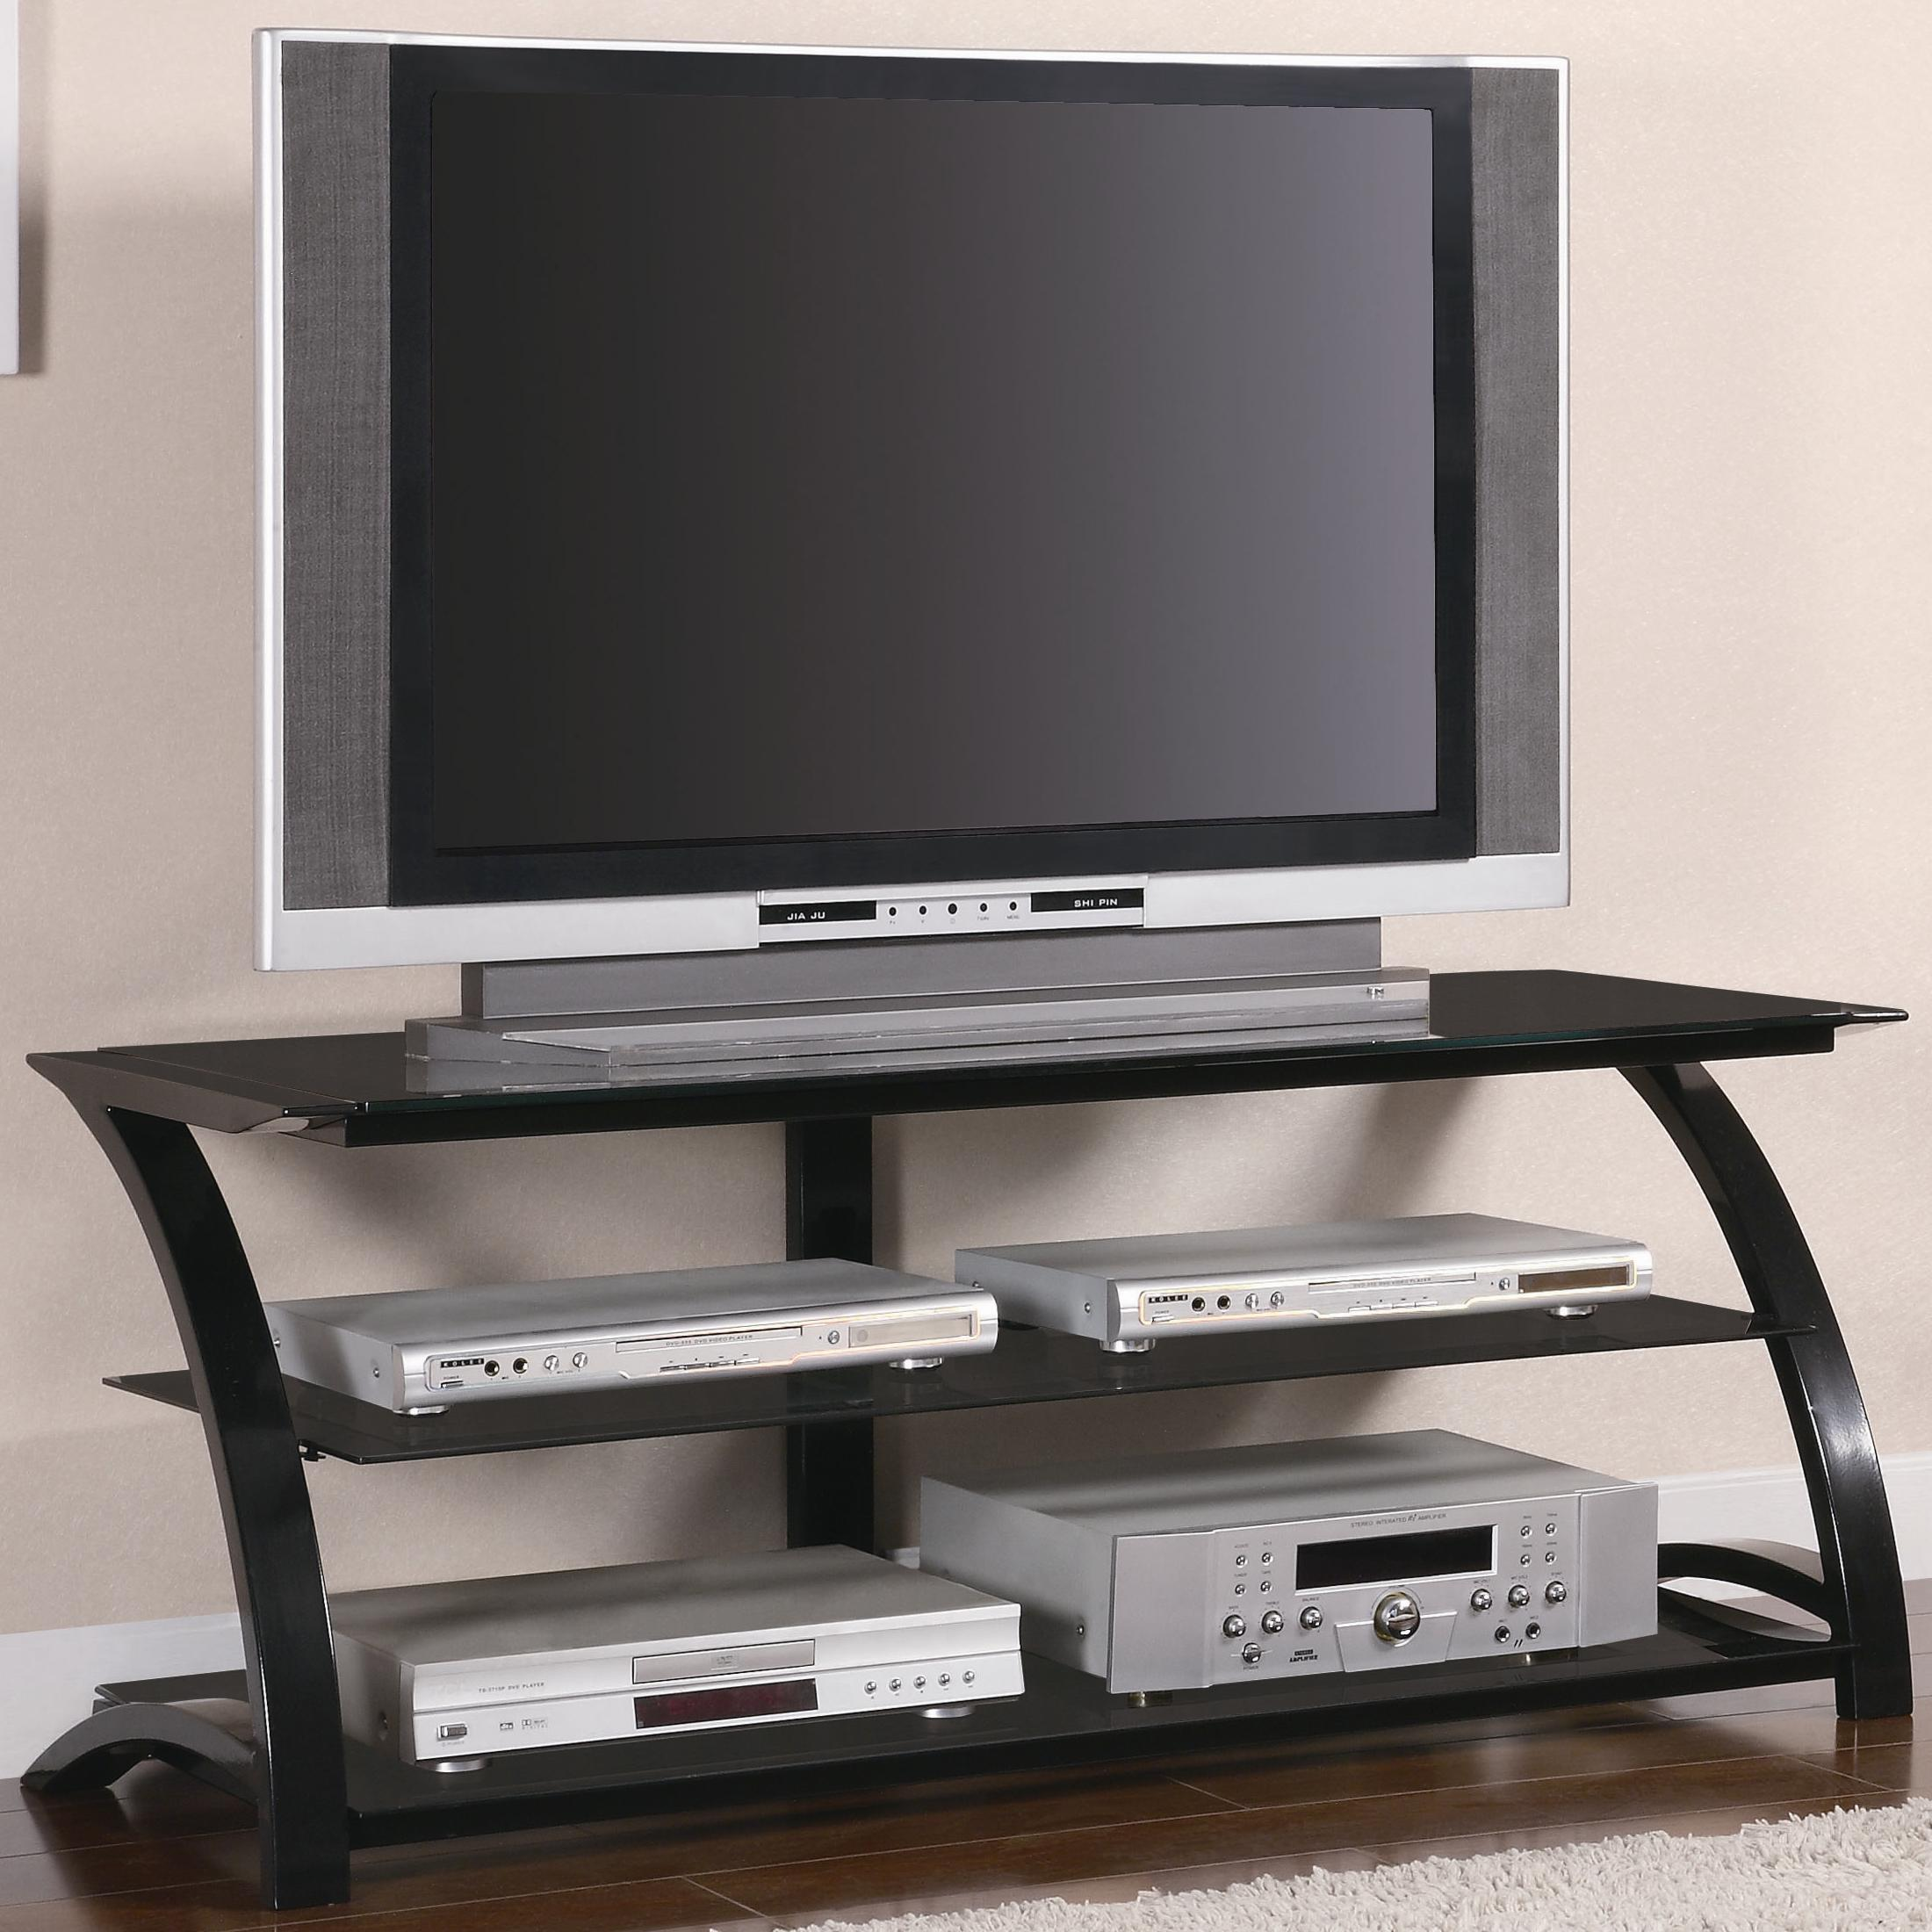 coaster tv stands 700664 contemporary metal and glass. Black Bedroom Furniture Sets. Home Design Ideas